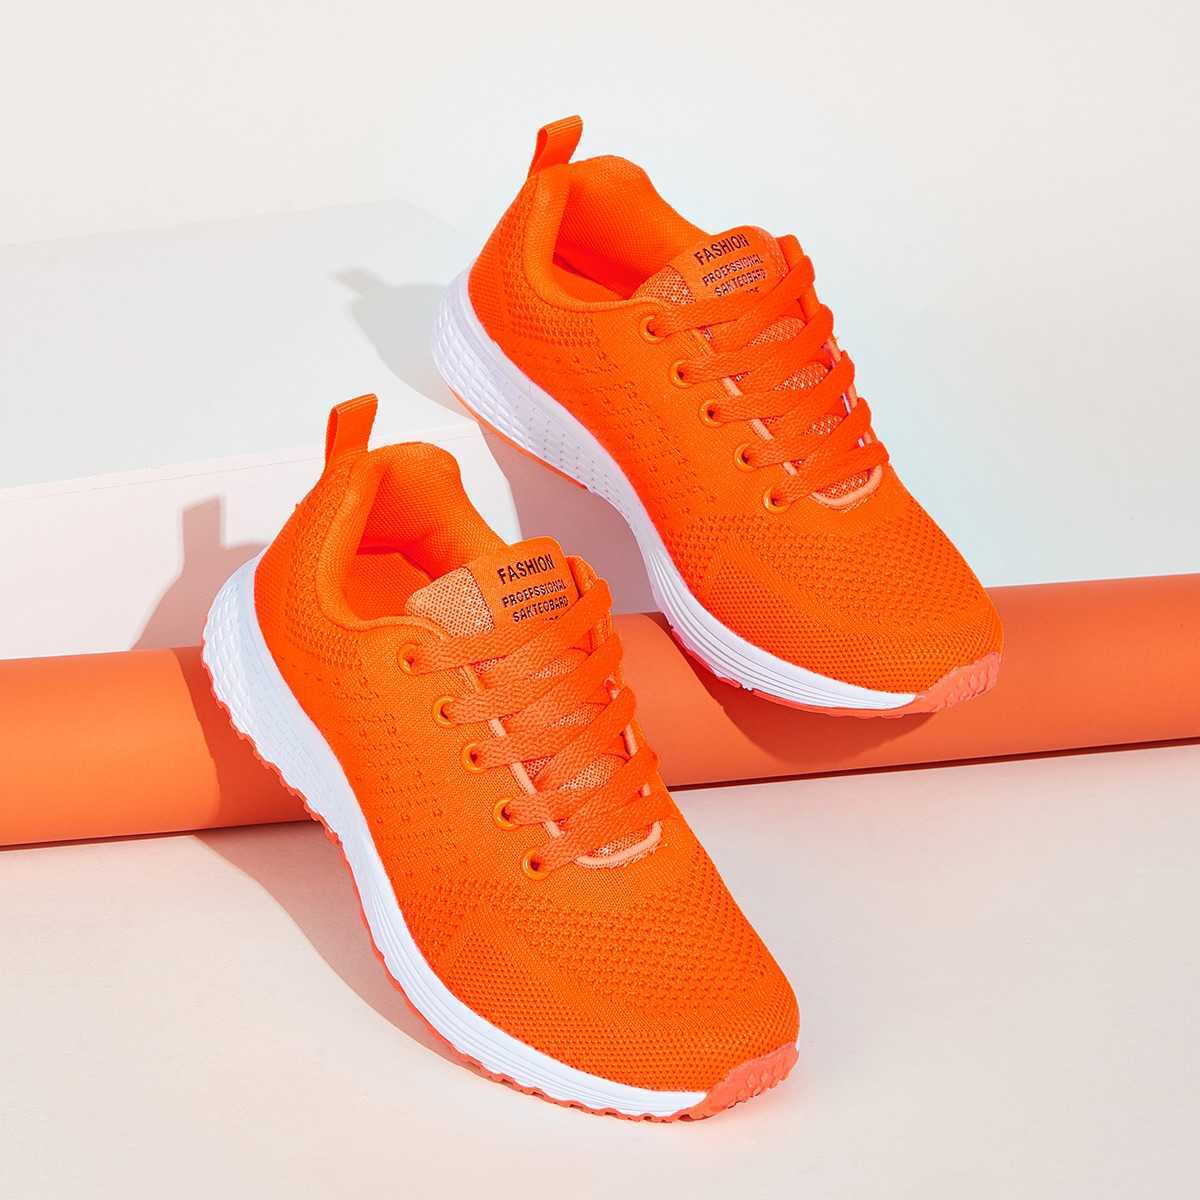 Neon Orange Lace-up Front Trainers in Orange Neon by ROMWE on GOOFASH